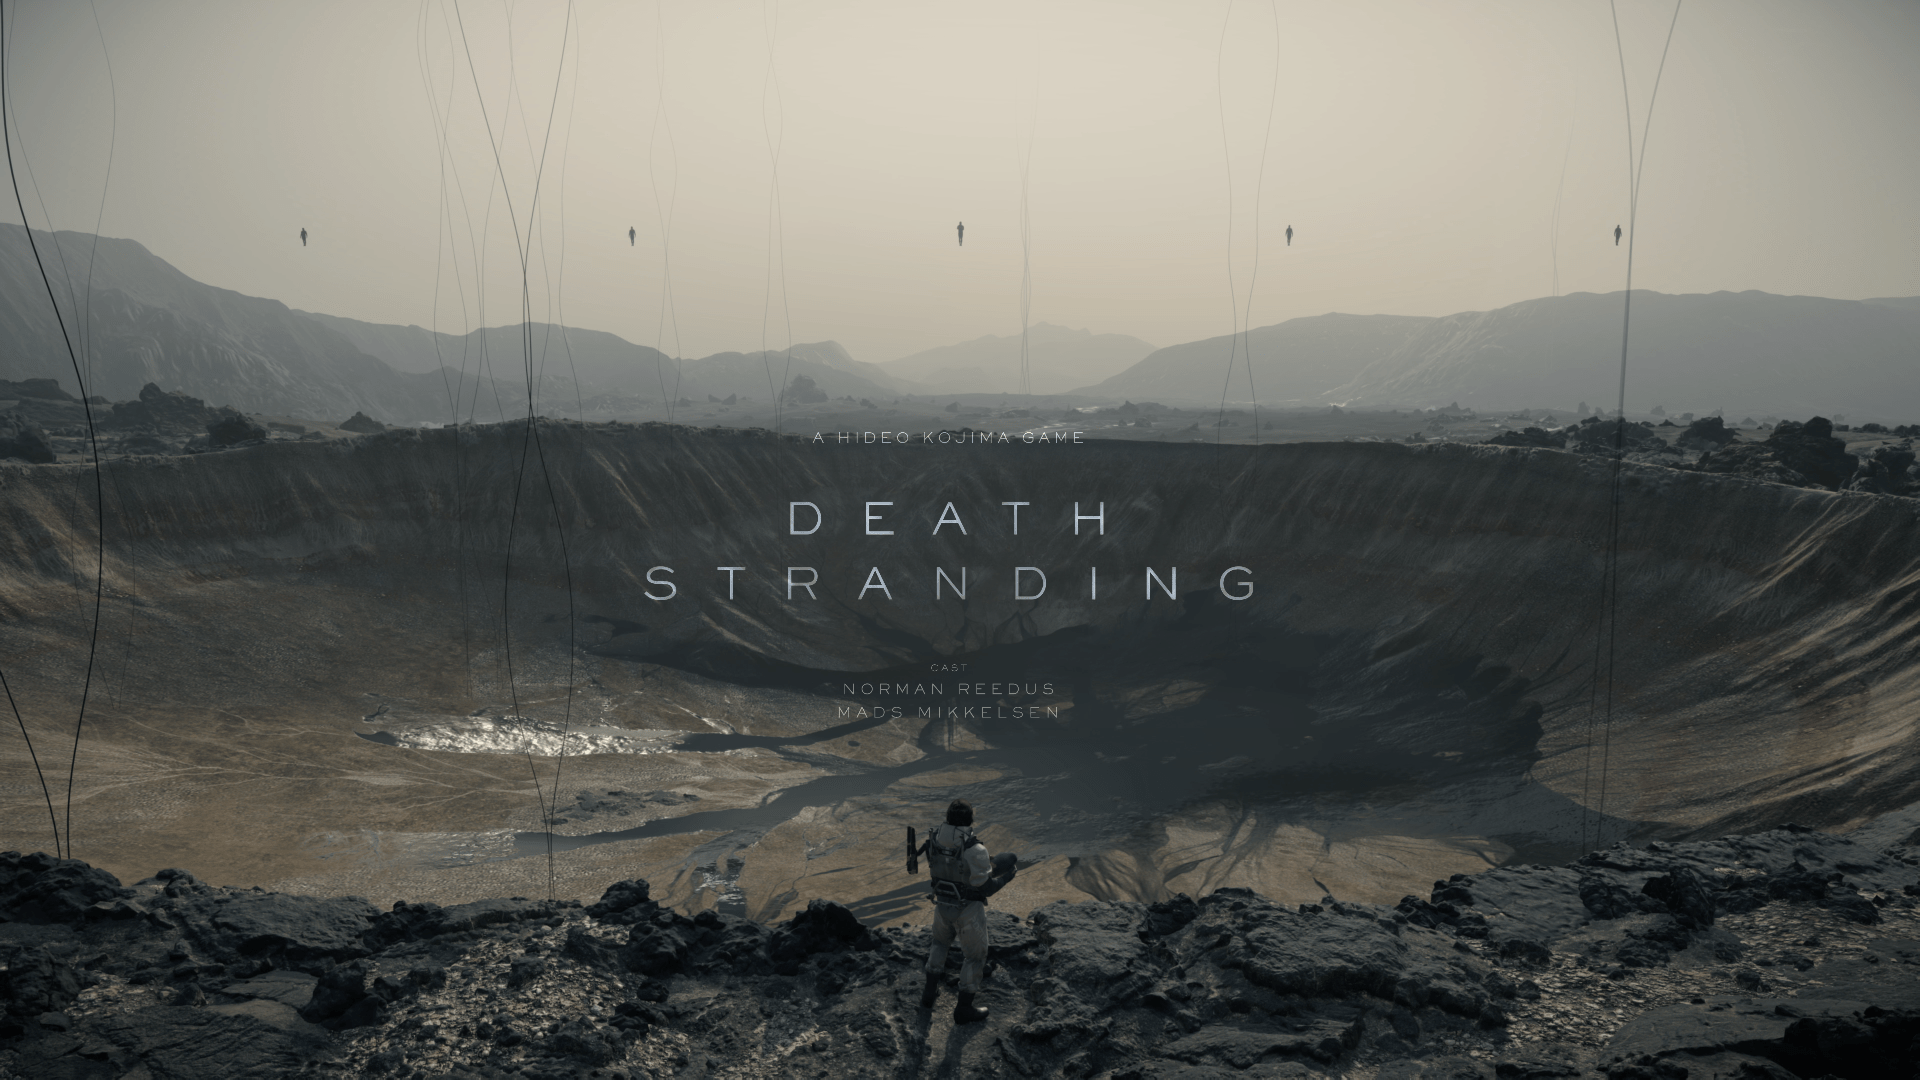 Best Wallpapers For Iphone X App Death Stranding Release Date Trailers Story And More